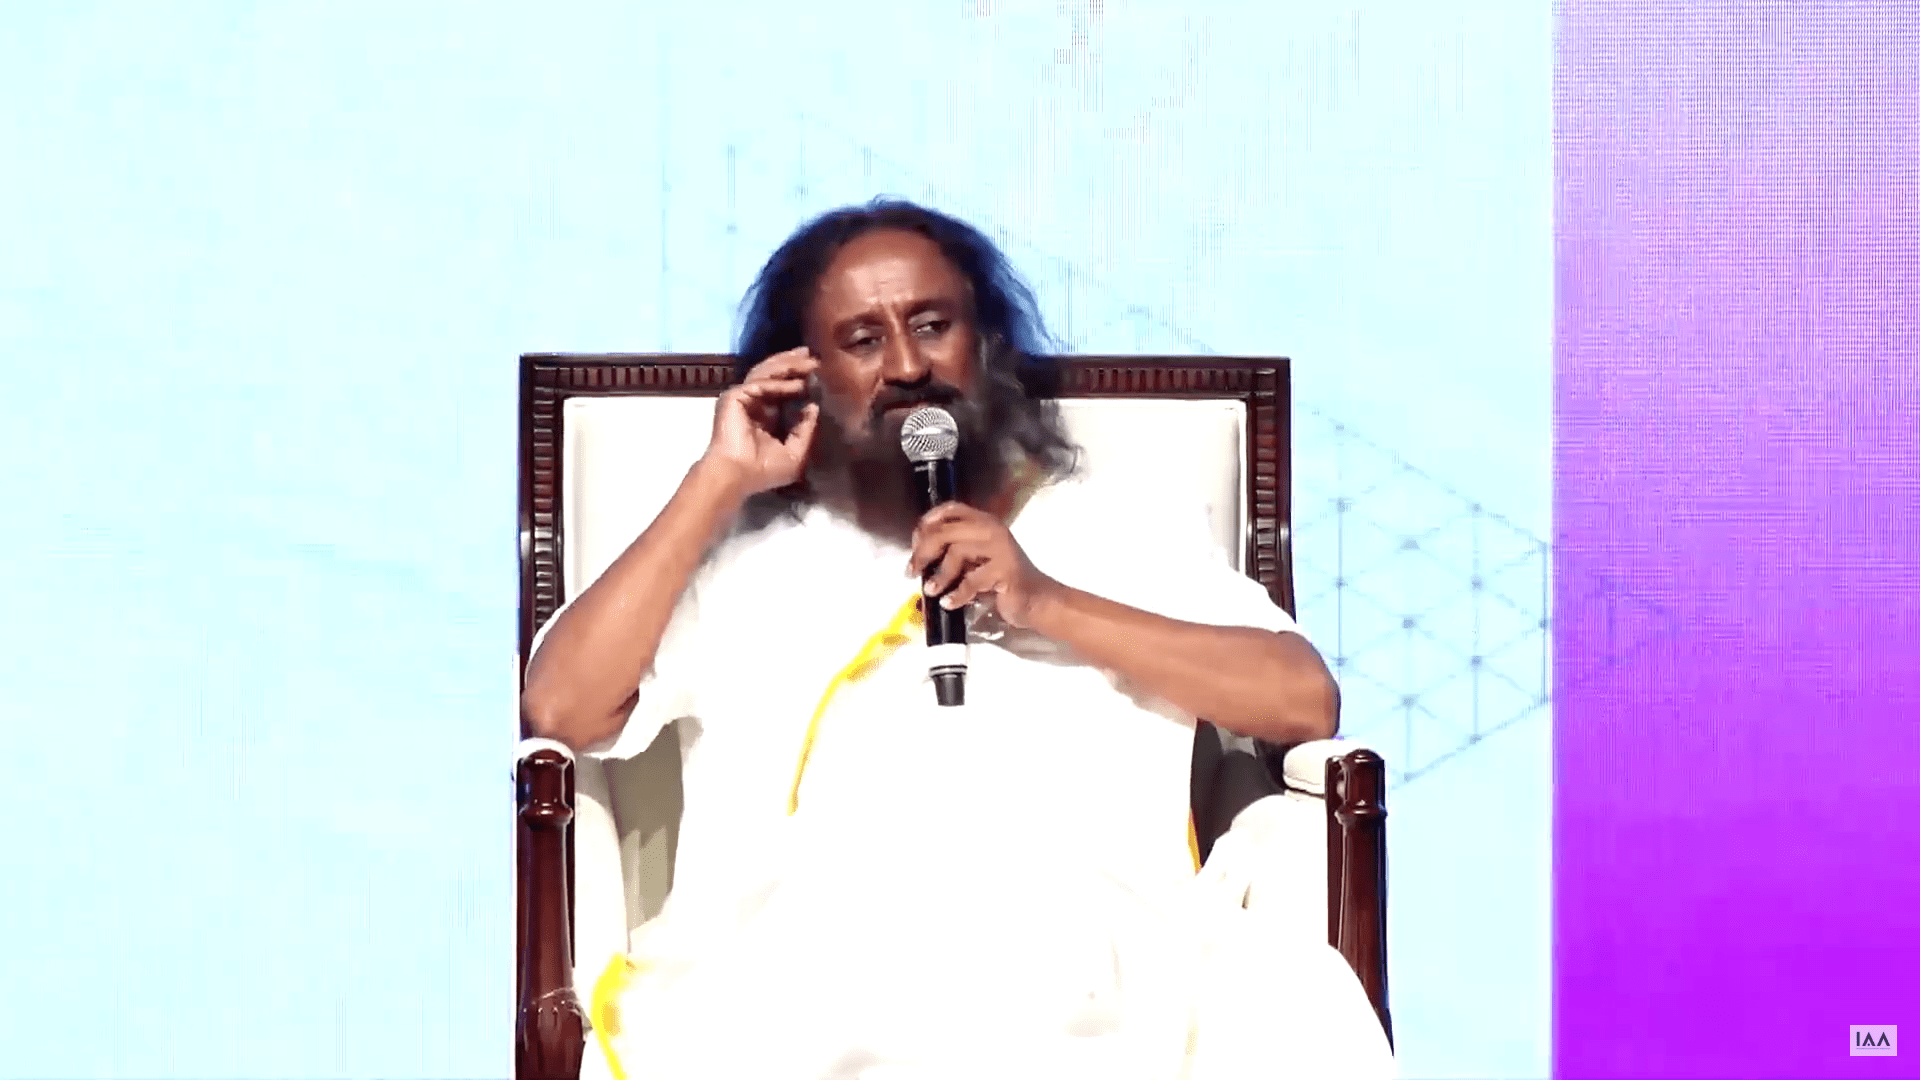 Sri Sri Ravi Shankar | IAA World Congress 2019